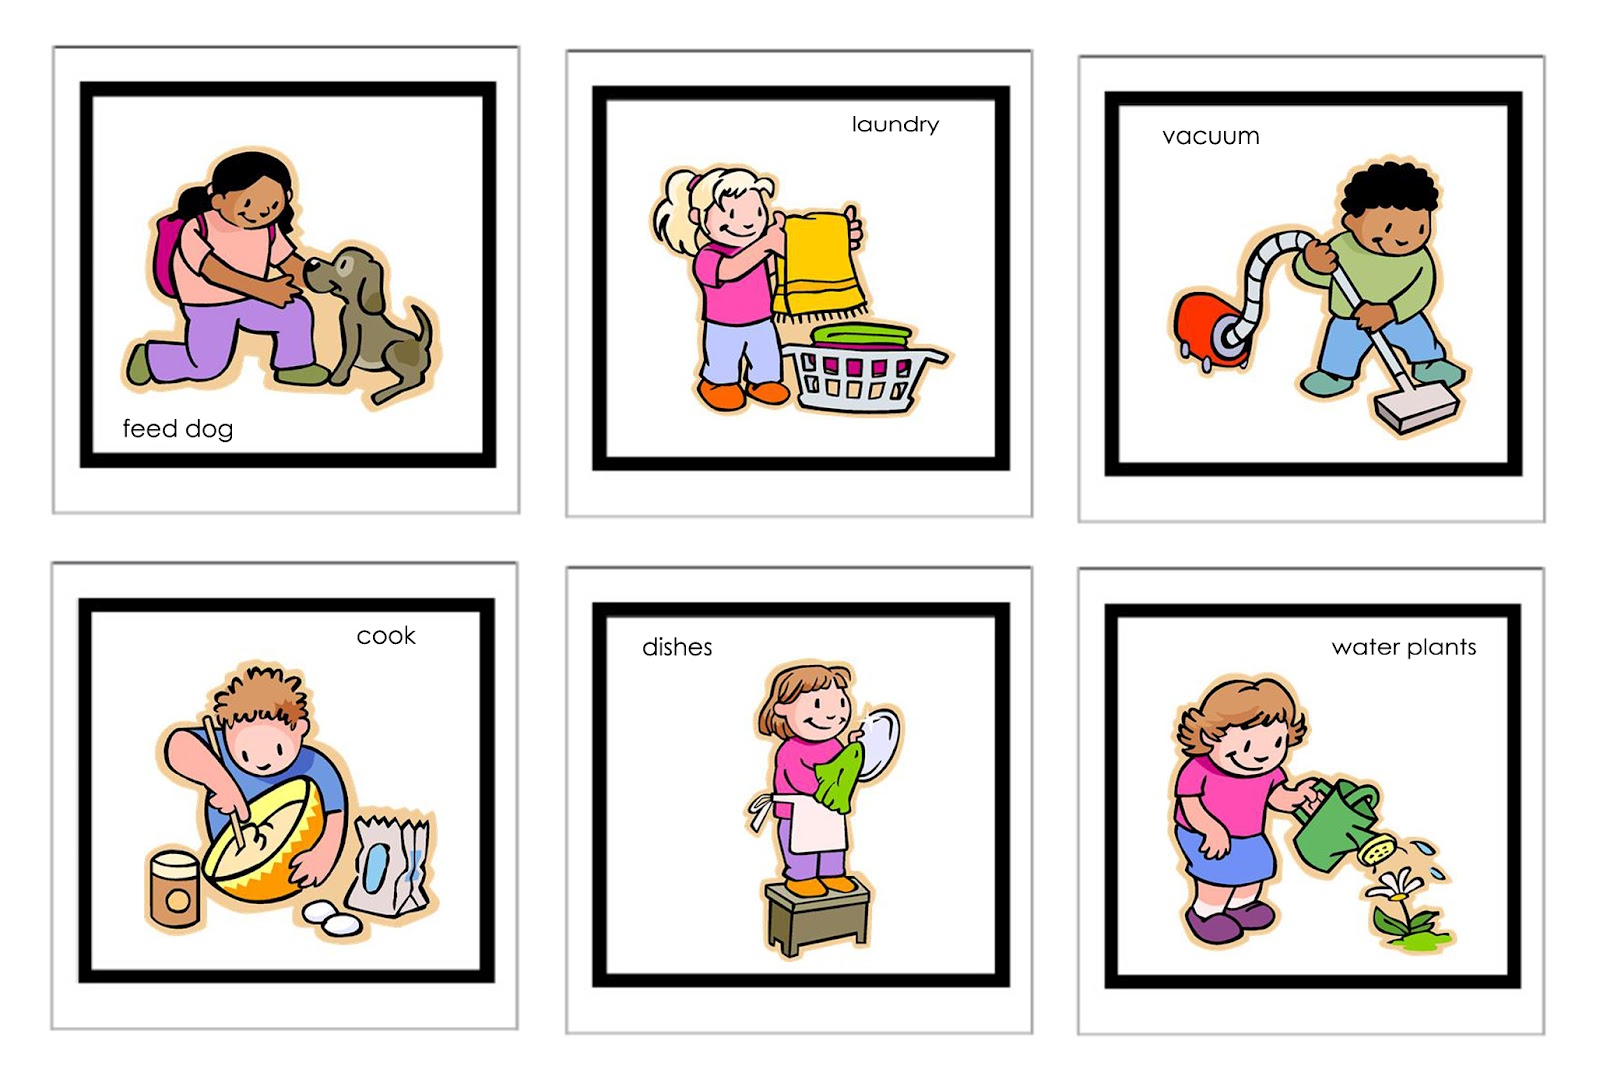 Free Fun Activities Cliparts Download Free Clip Art Free Clip Art On Clipart Library